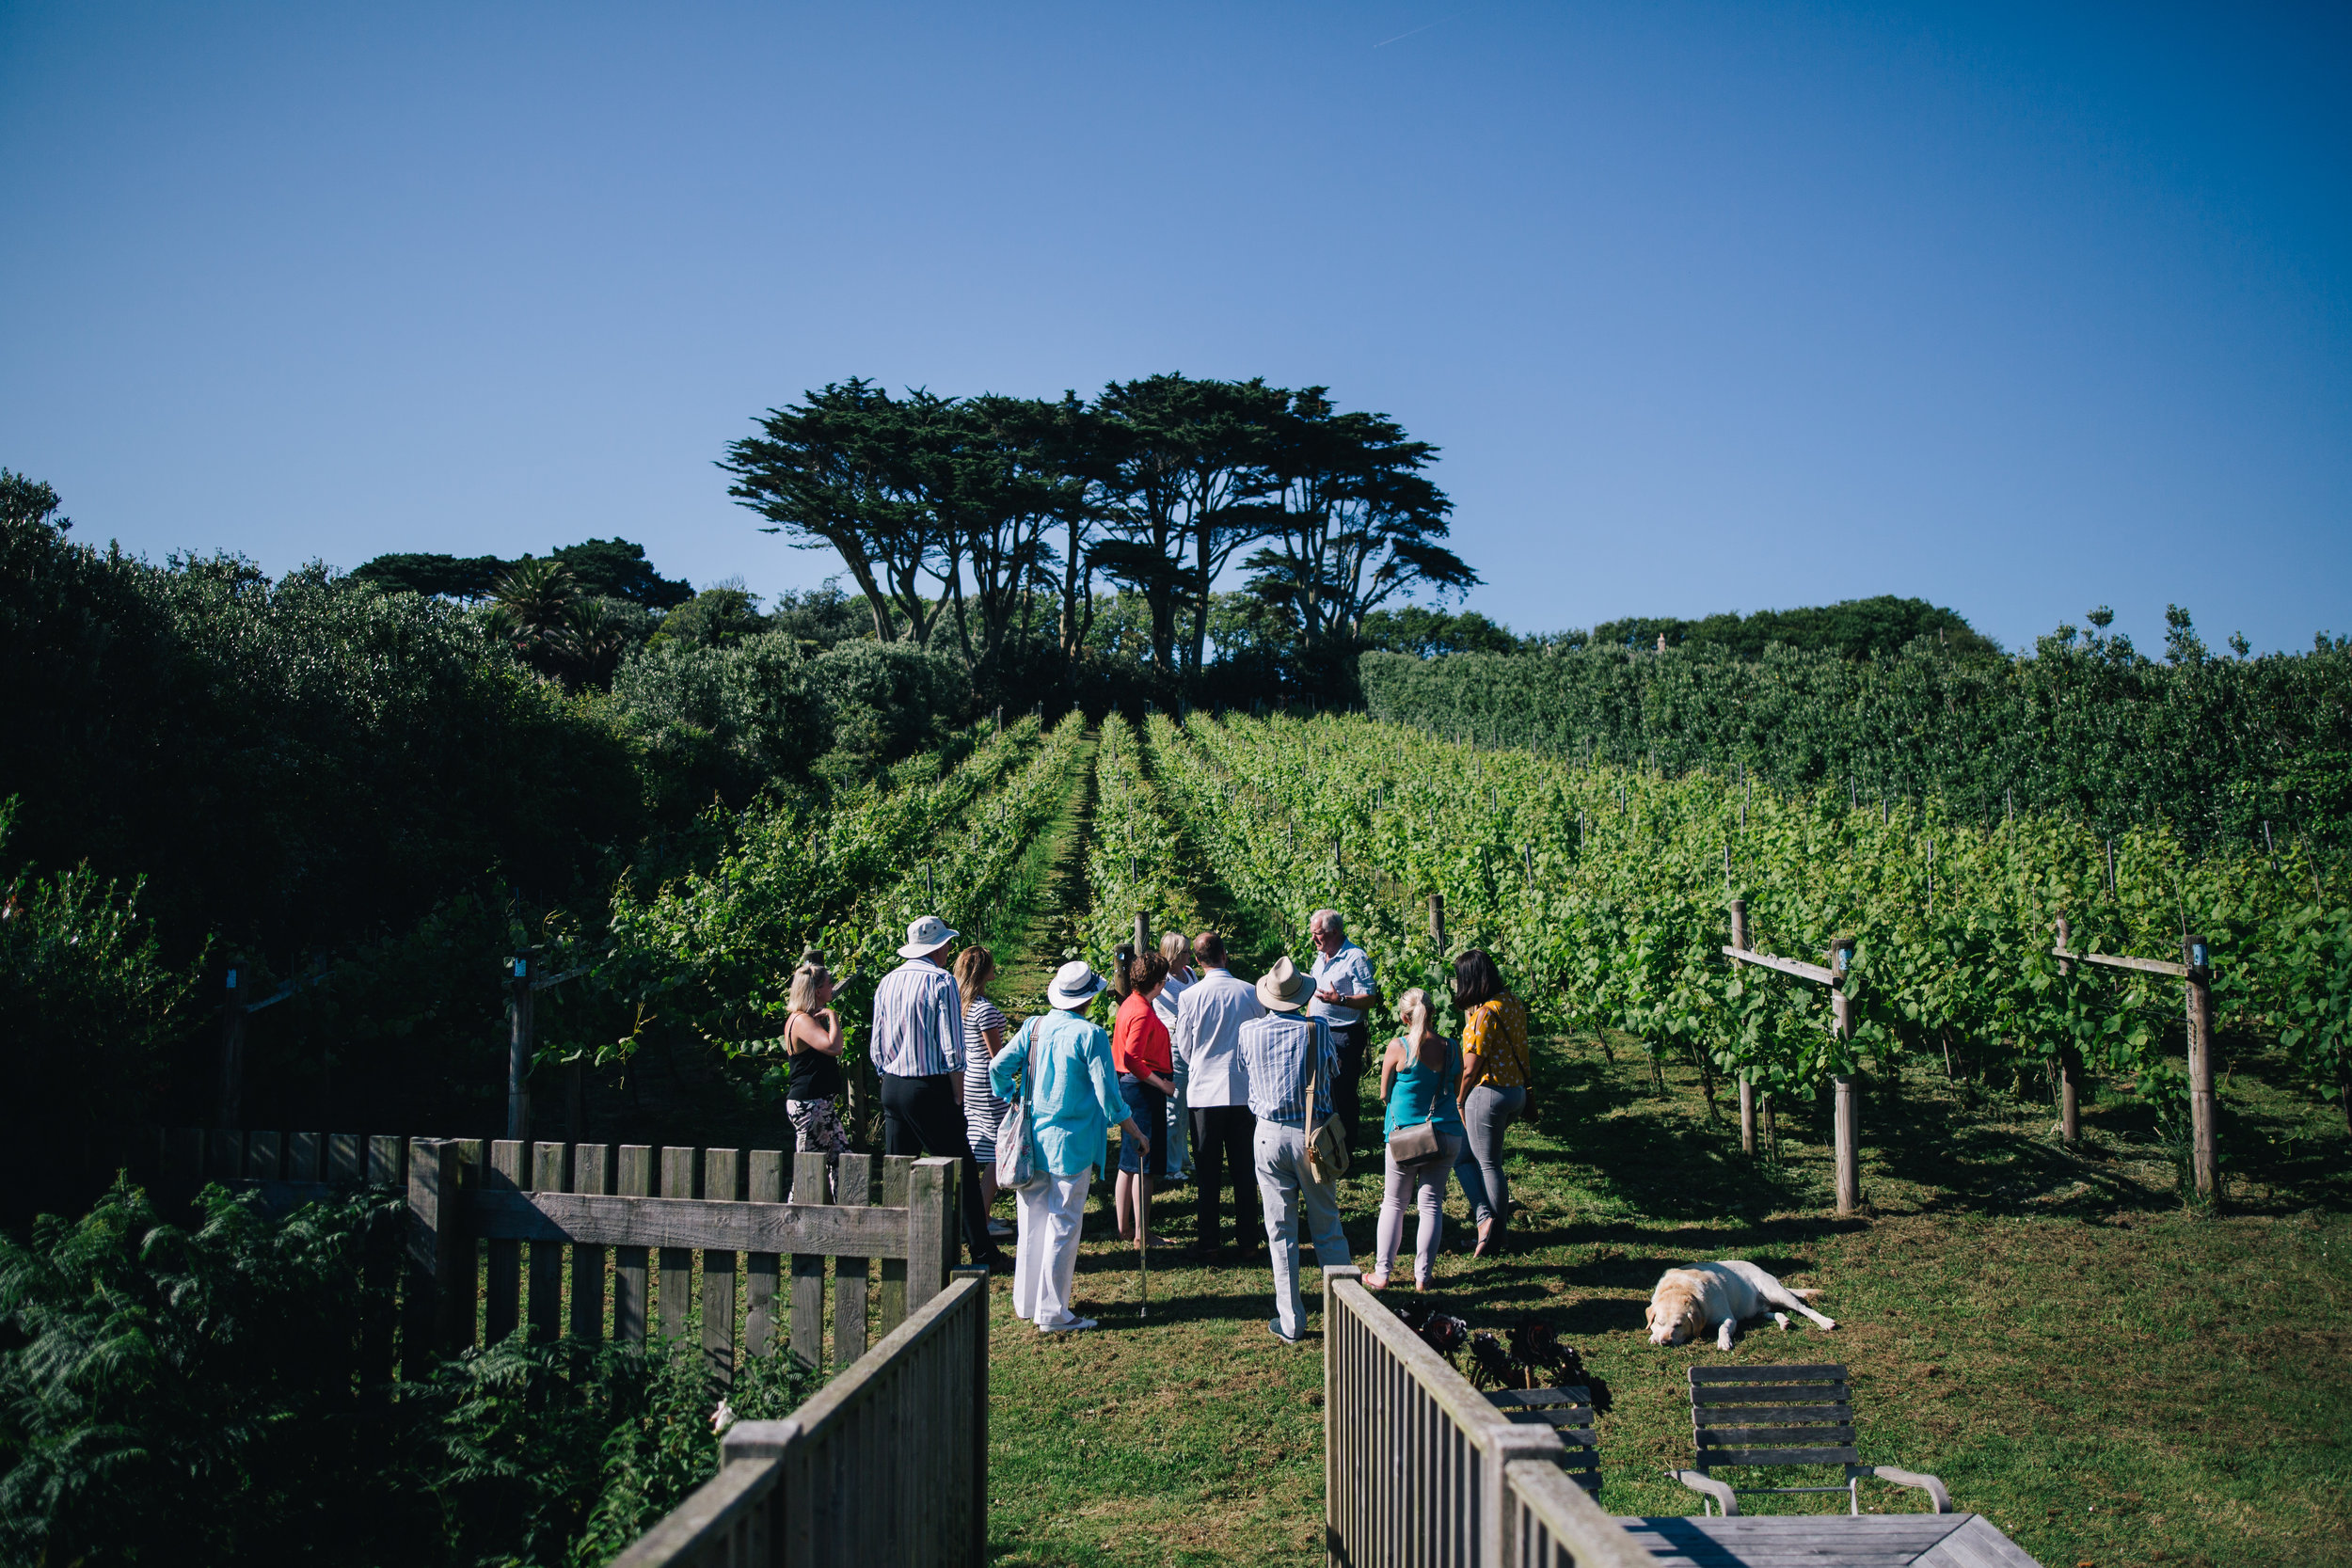 Holy Vale Vineyard on St Mary's. Image courtesy of Visit Isles of Scilly.